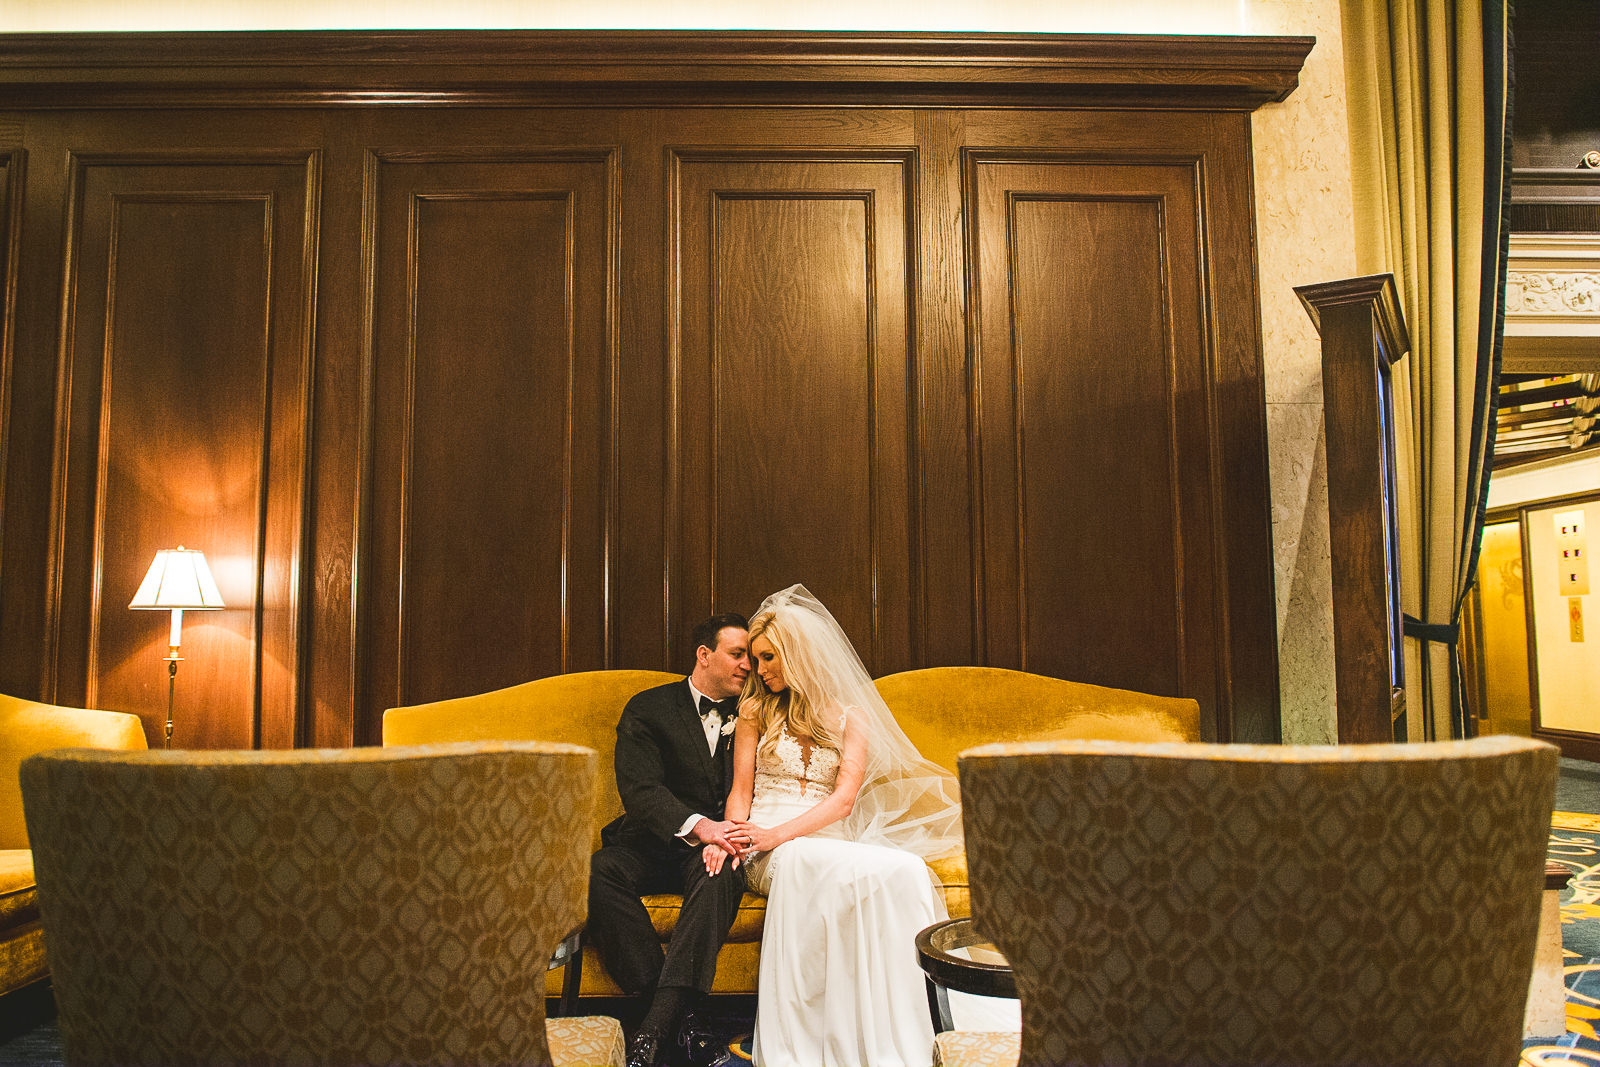 43 creative chicago wedding photos - Kayla + Terry // Drake Hotel Chicago Wedding Photos